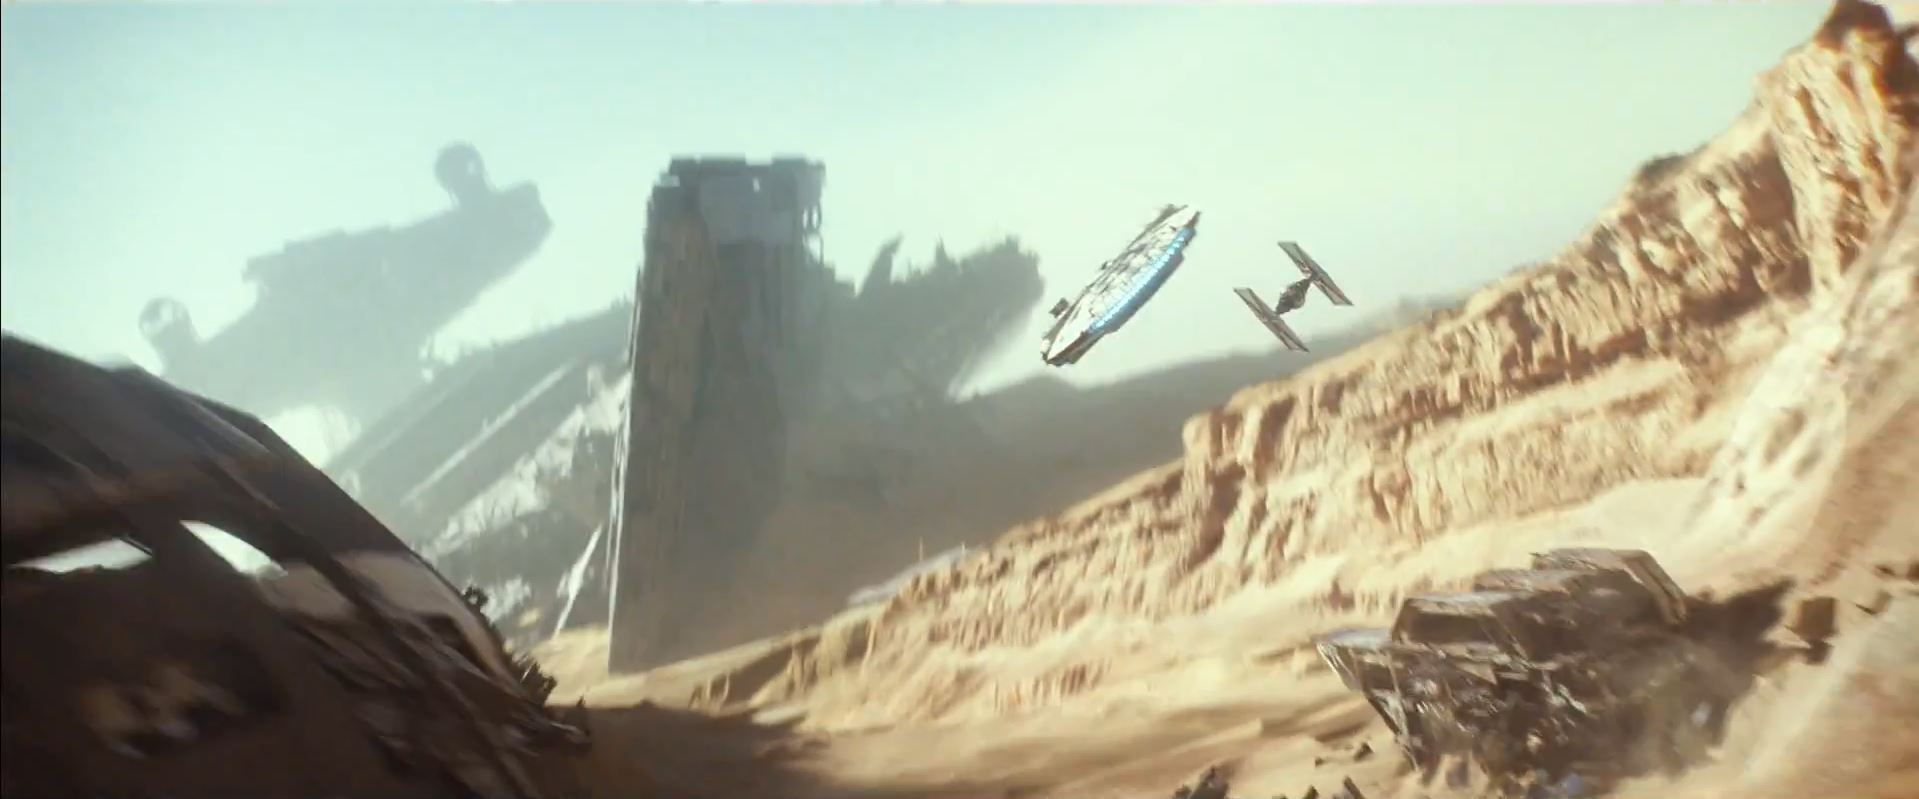 Millennium Falcon being chased on Jakku